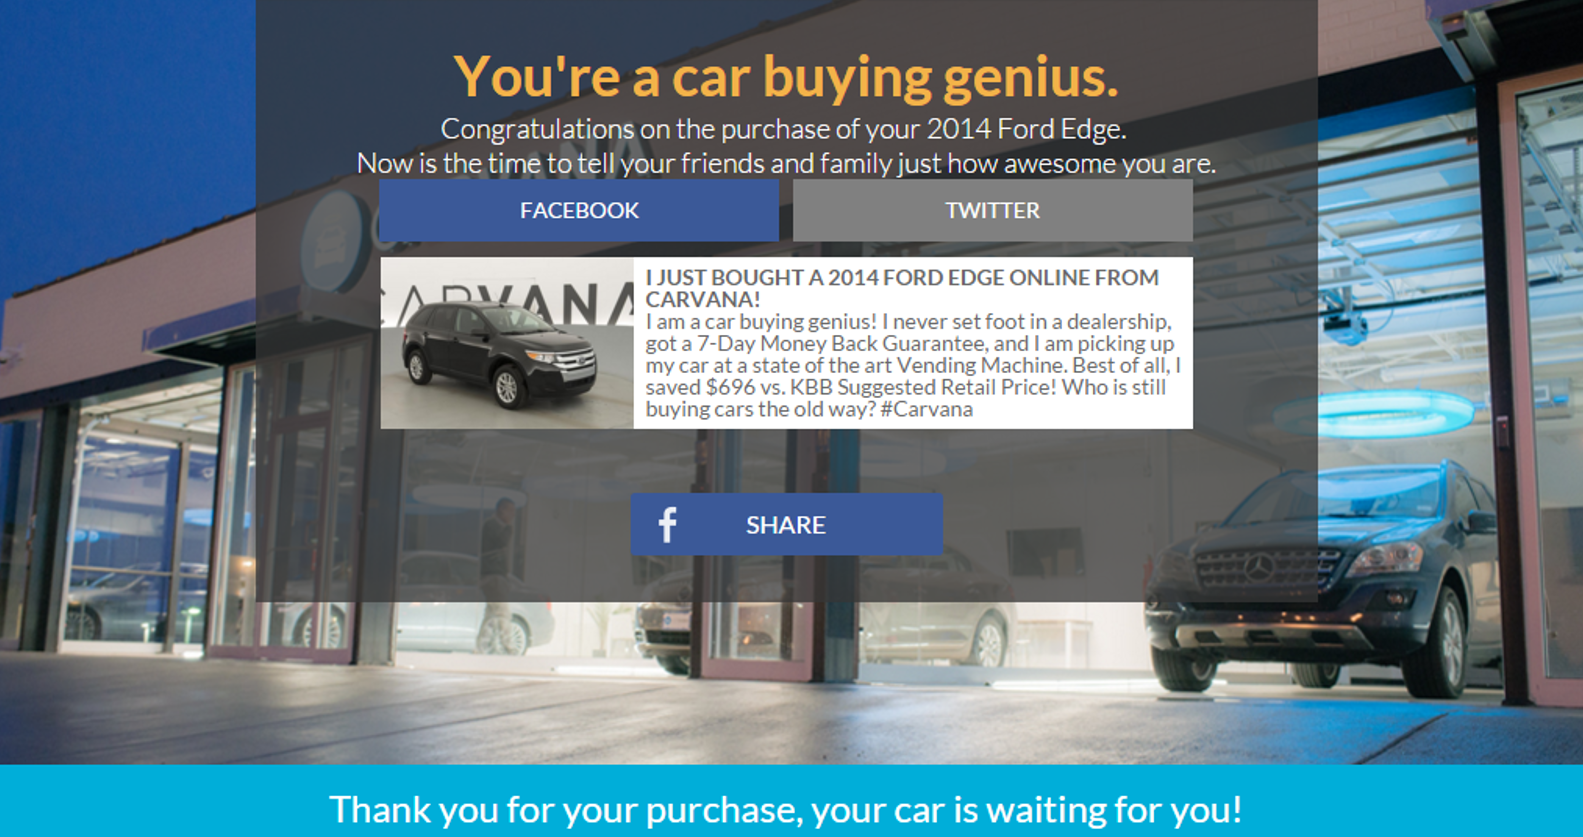 I bought a car online in under 20 minutes – The Passionate Saver